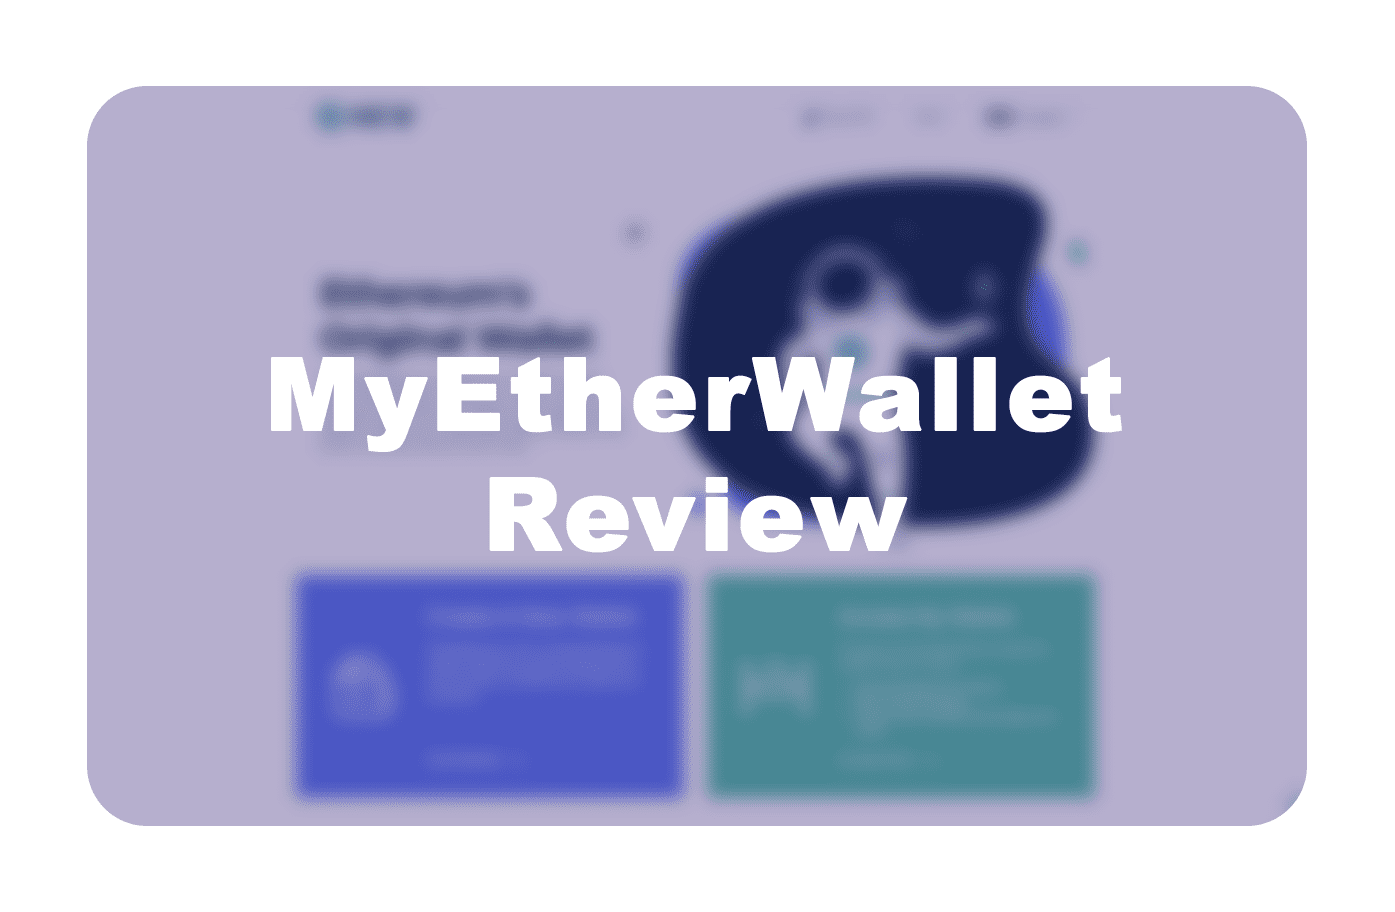 myetherwallet review by safetrading